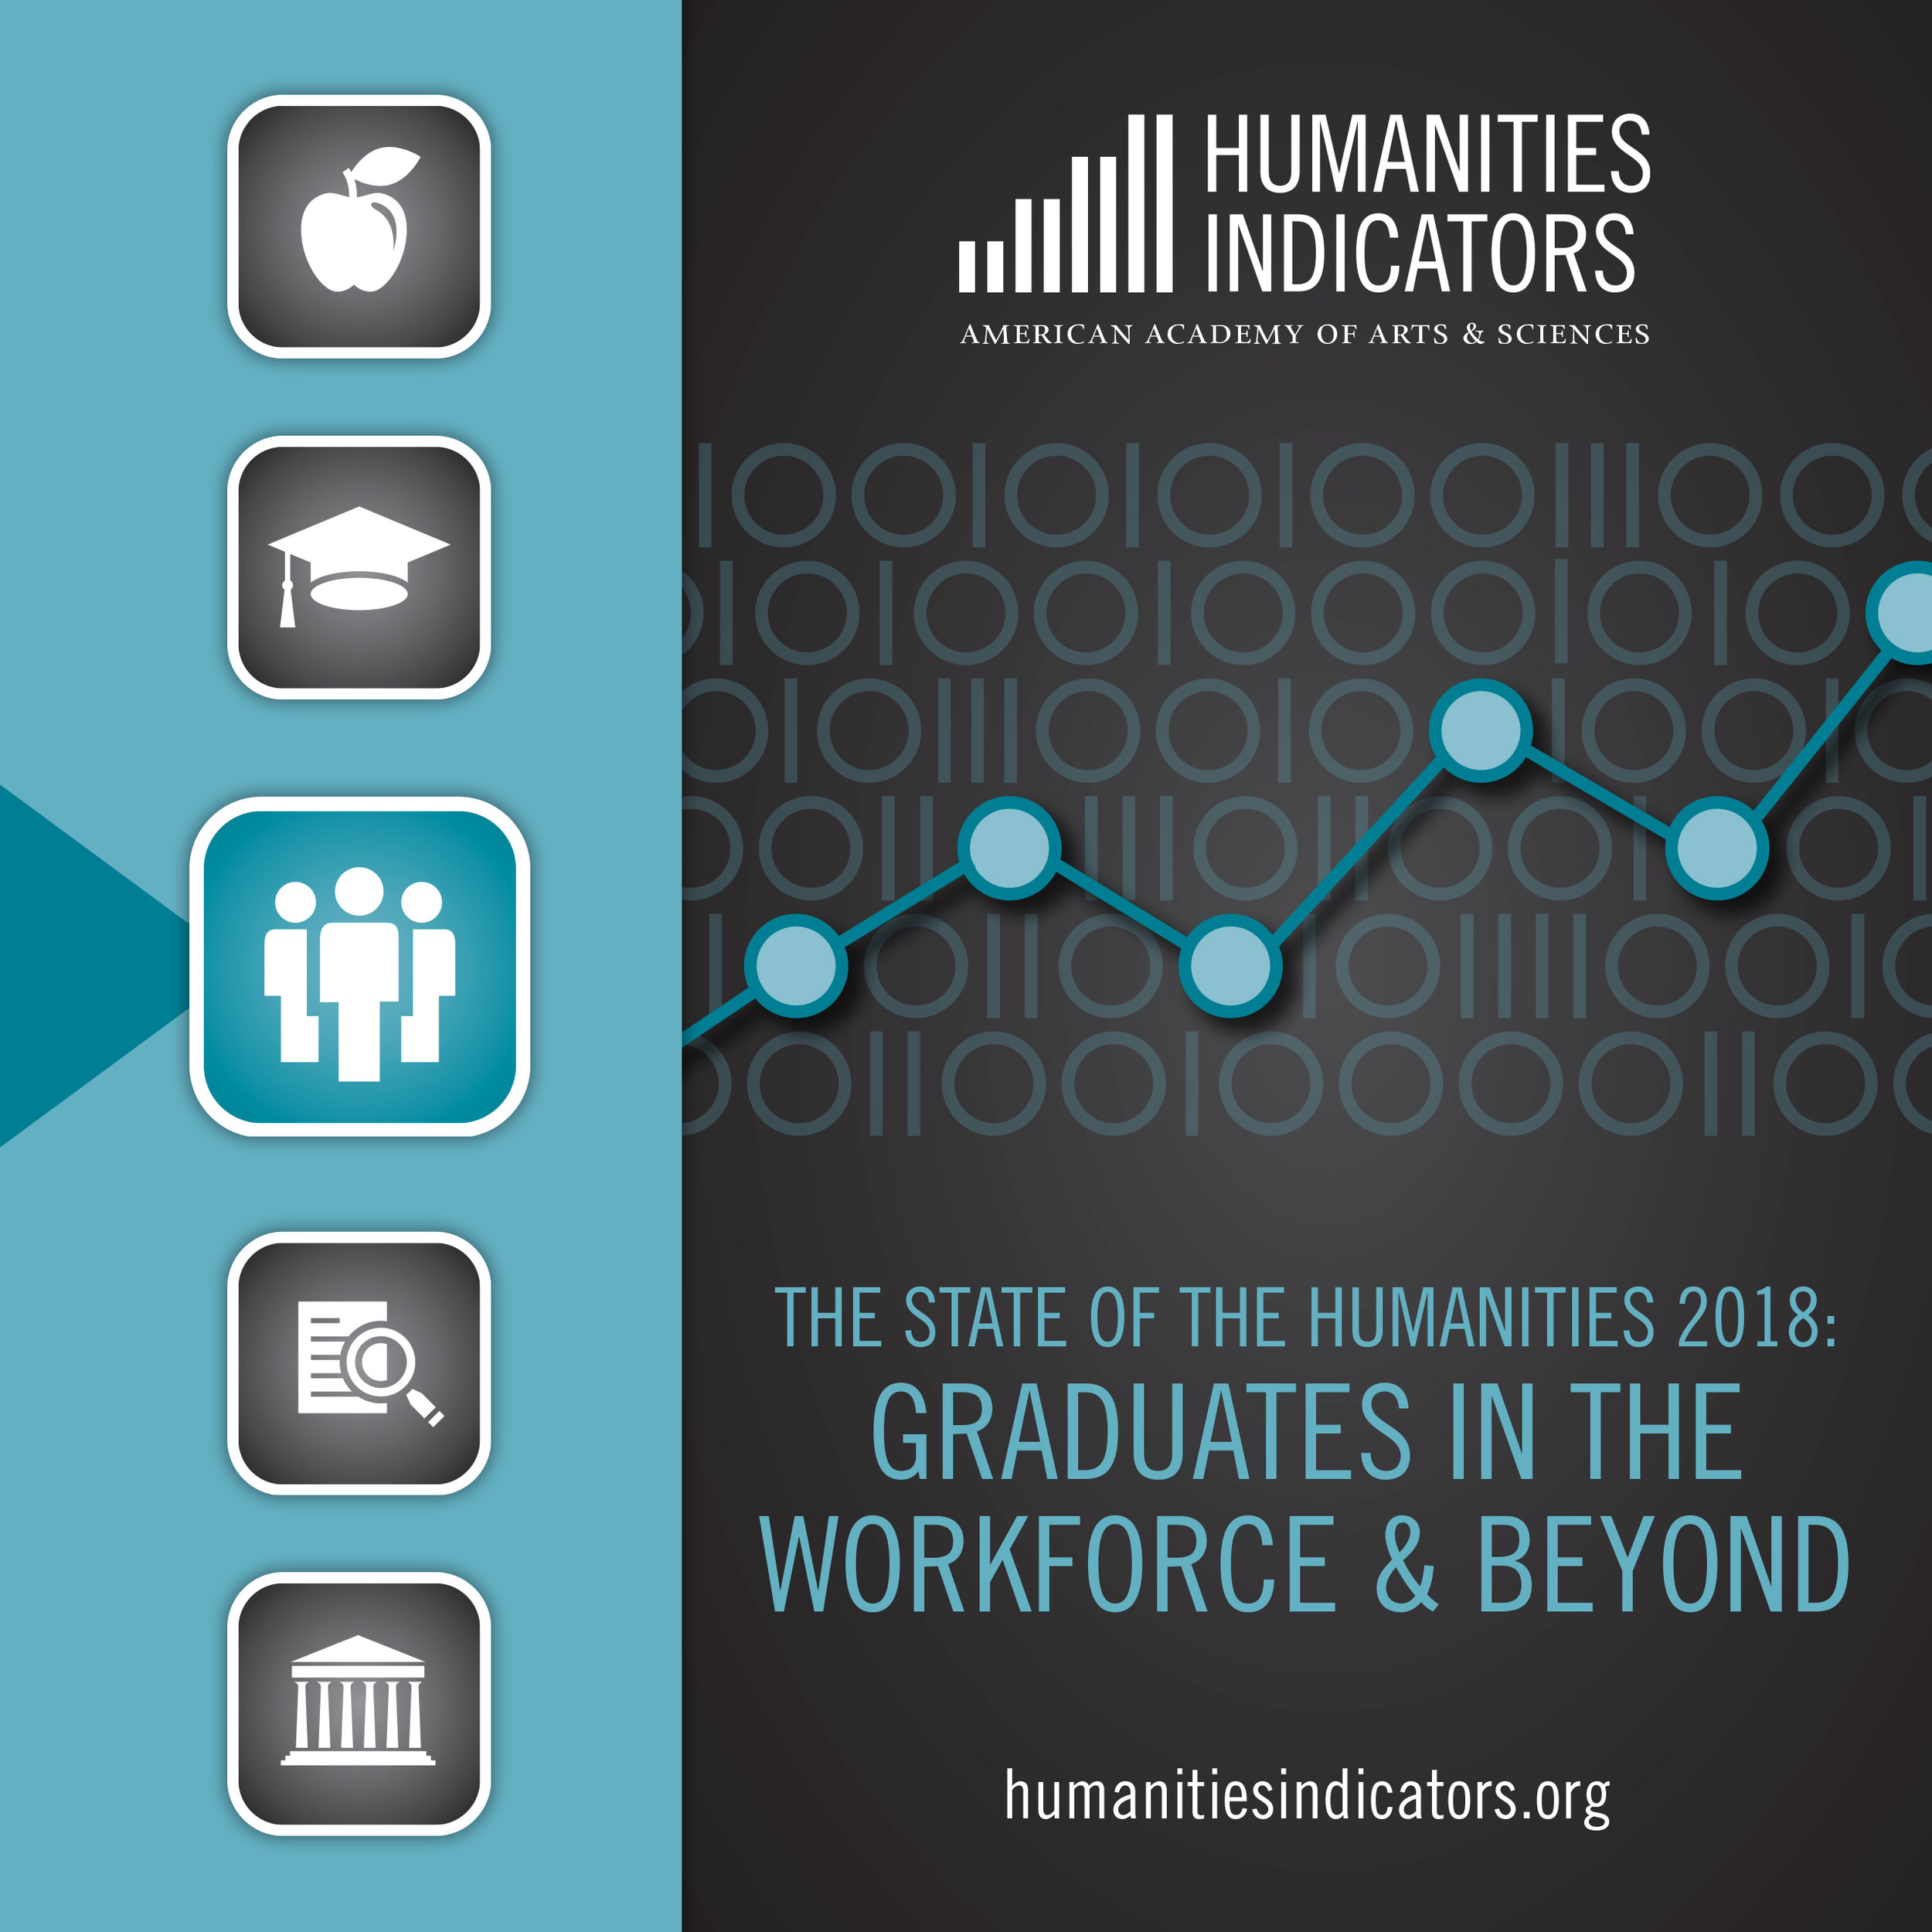 The State of the Humanities 2018